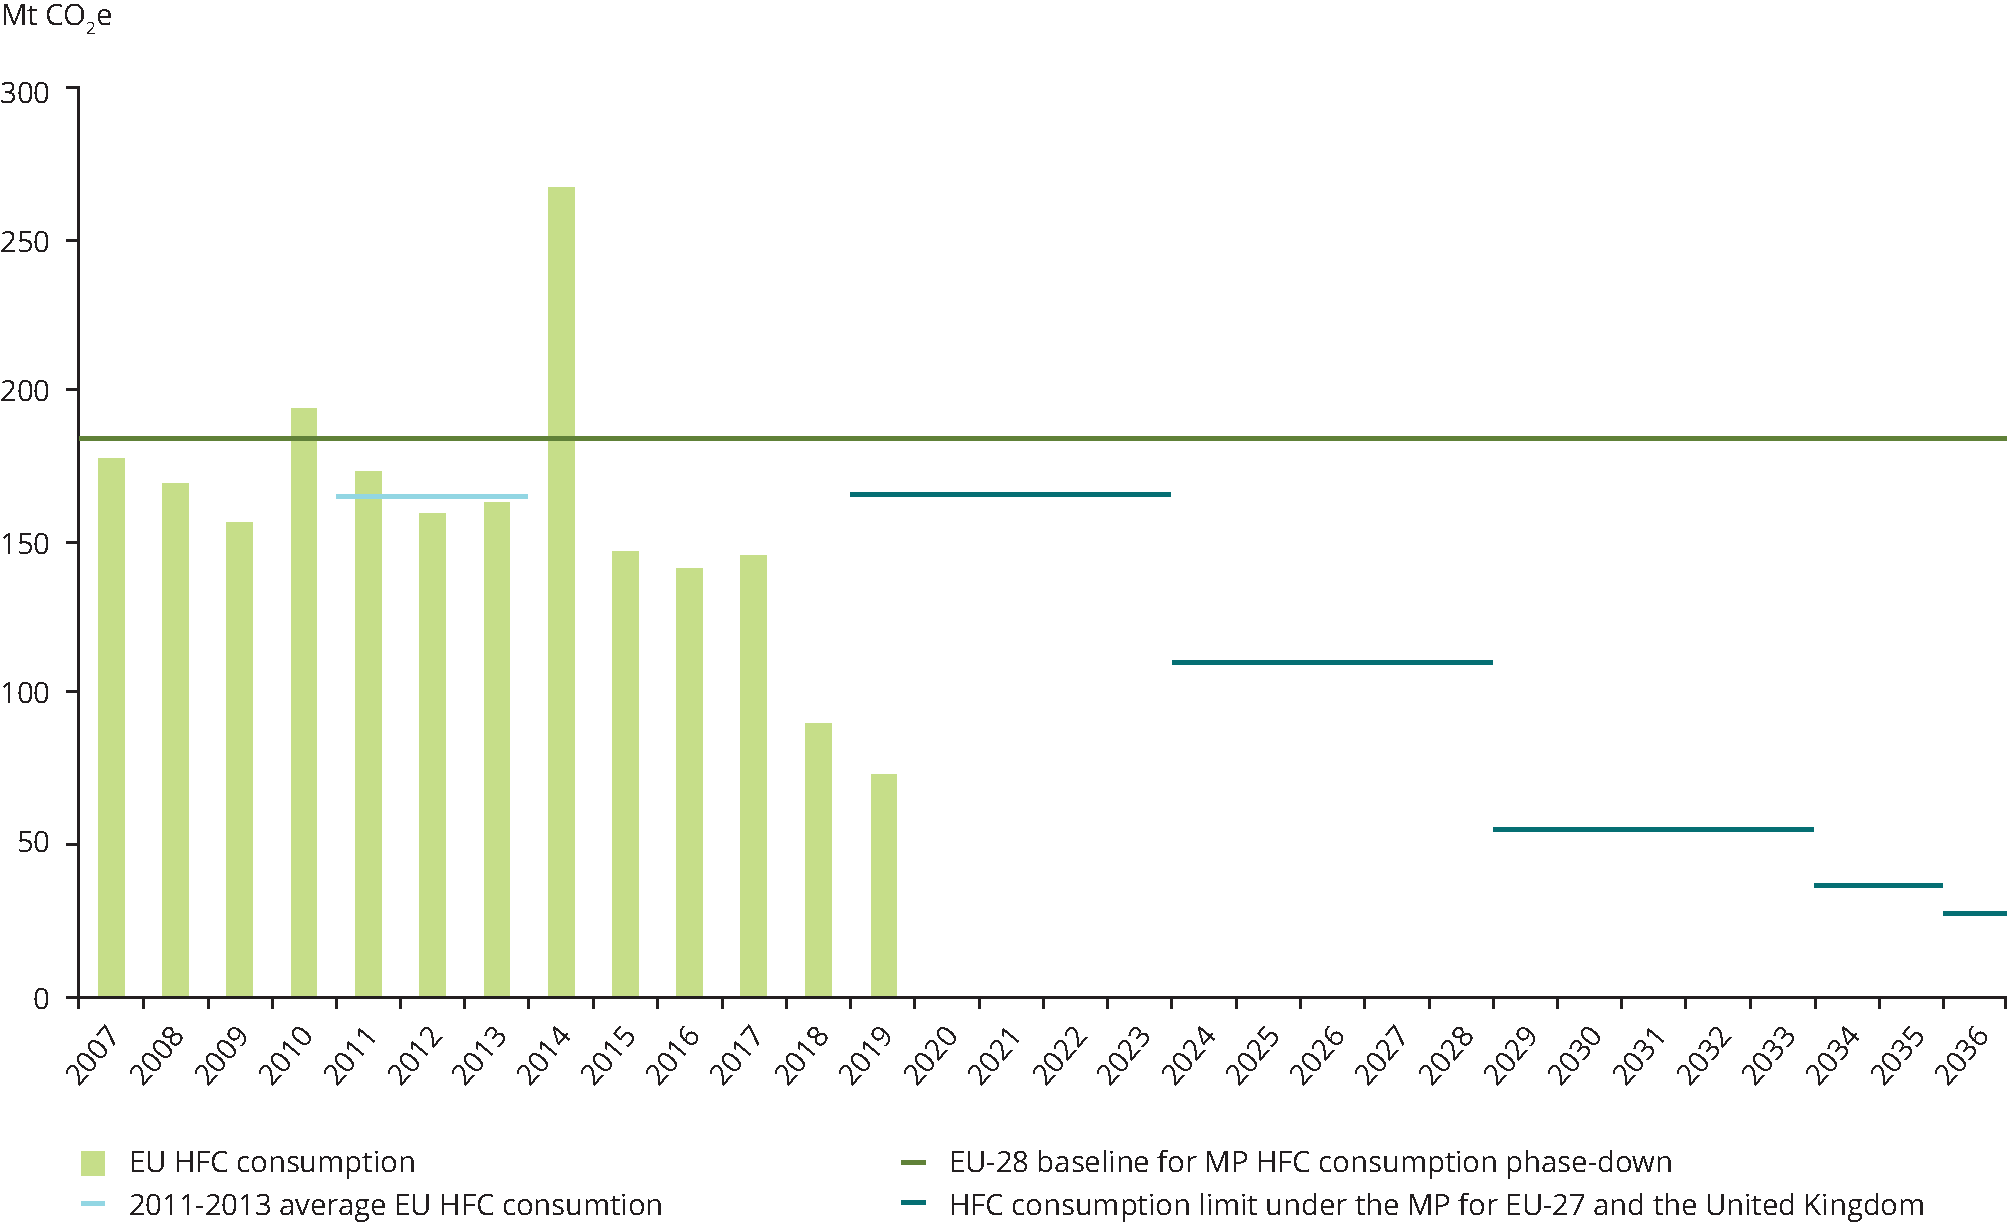 EU progress towards the worldwide hydrofluorocarbon consumption phase-down under the Montreal Protocol